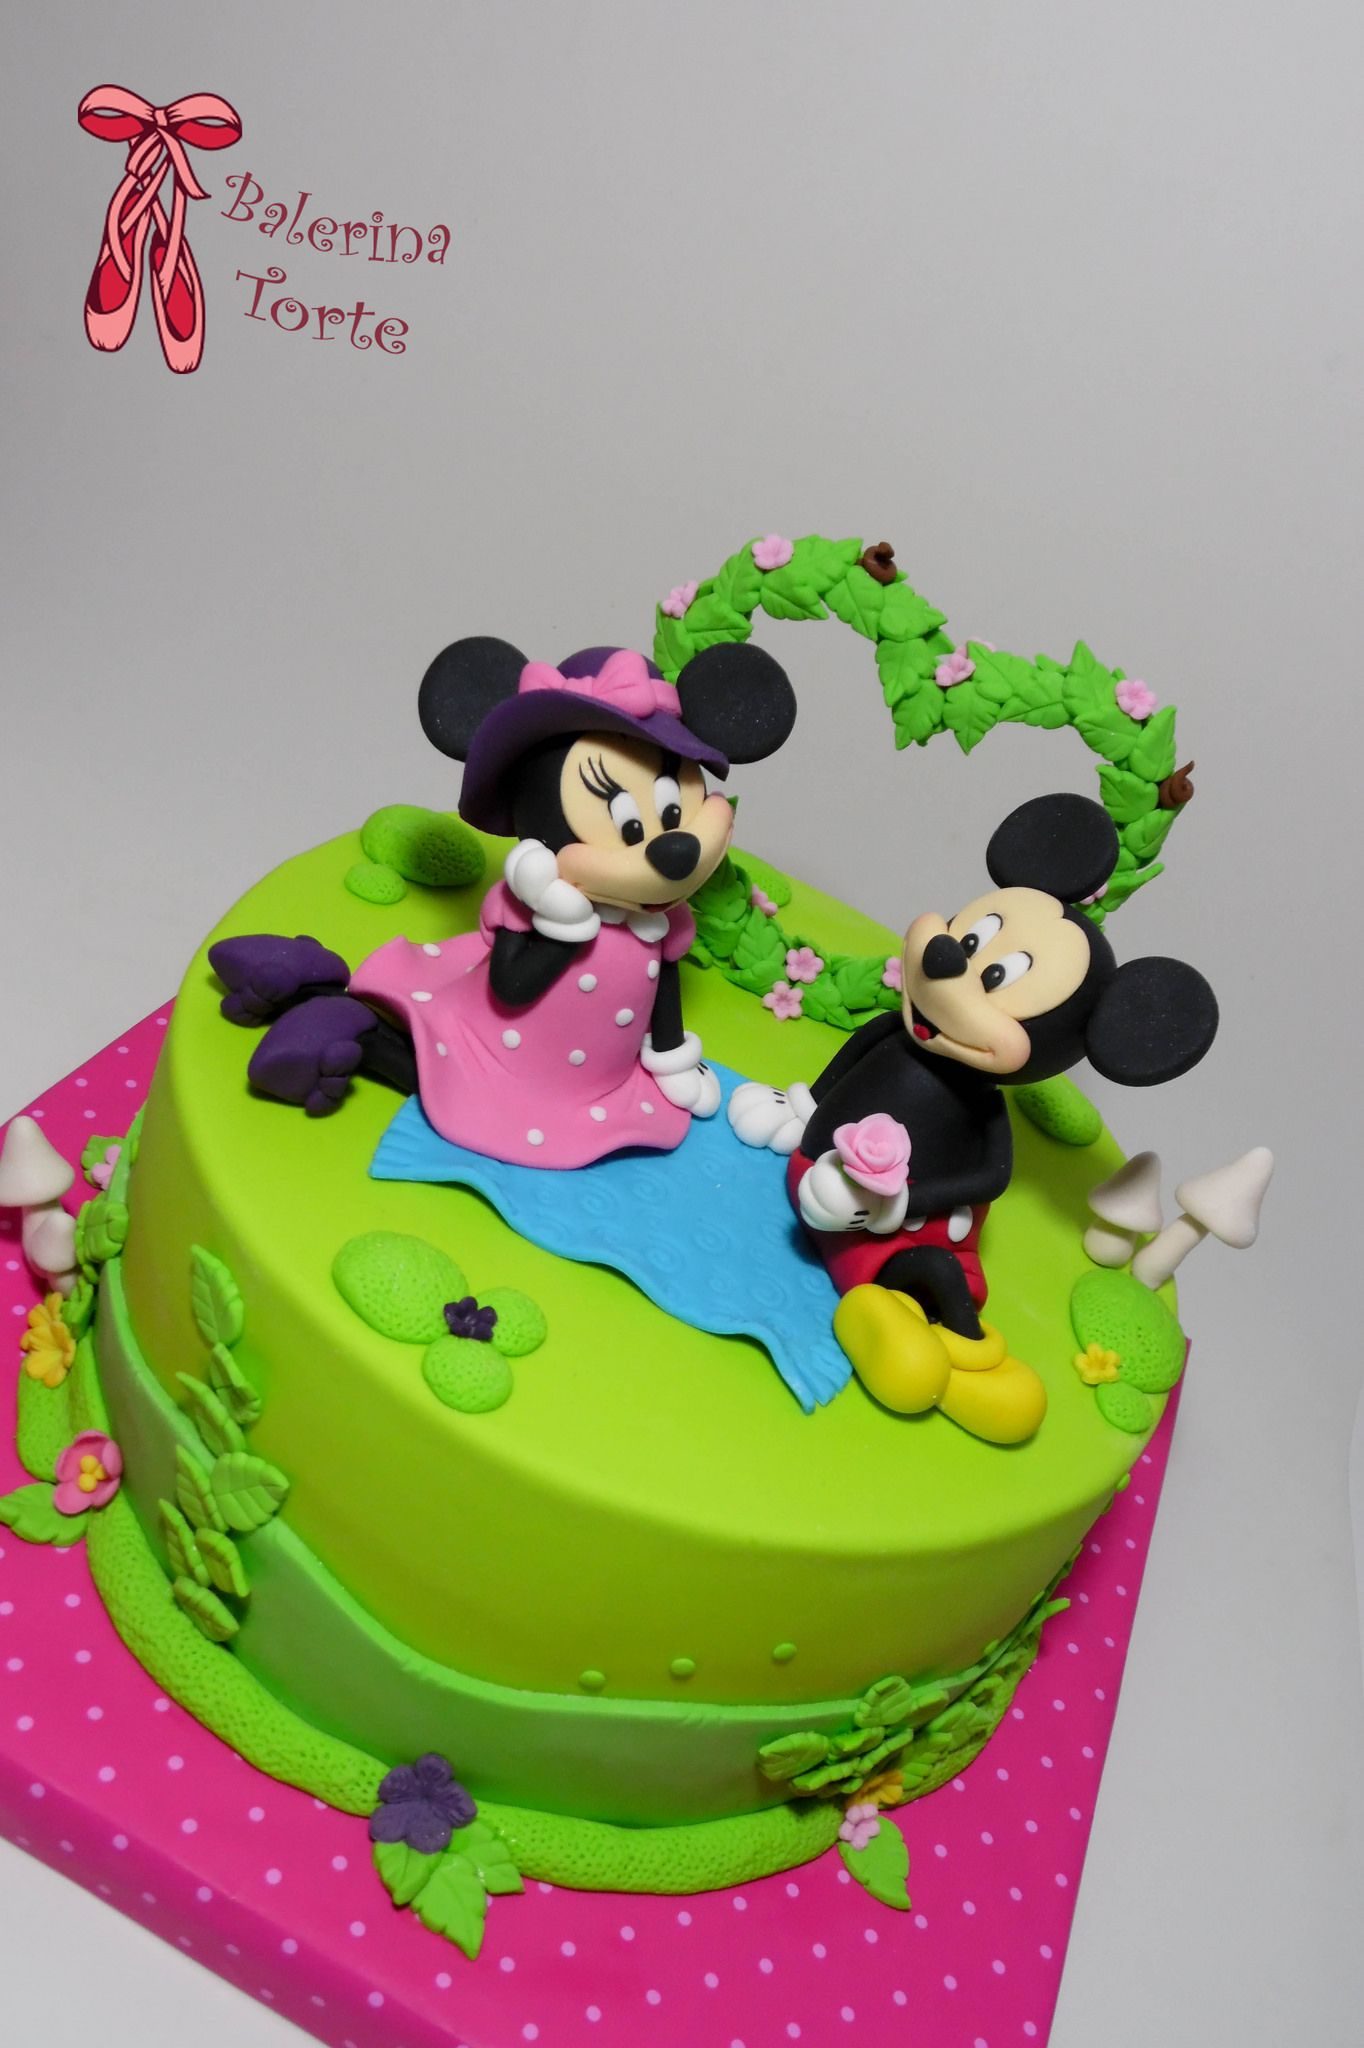 Mickey And Minnie Mouse Picnic Cake Miki I Mini Maus Piknik